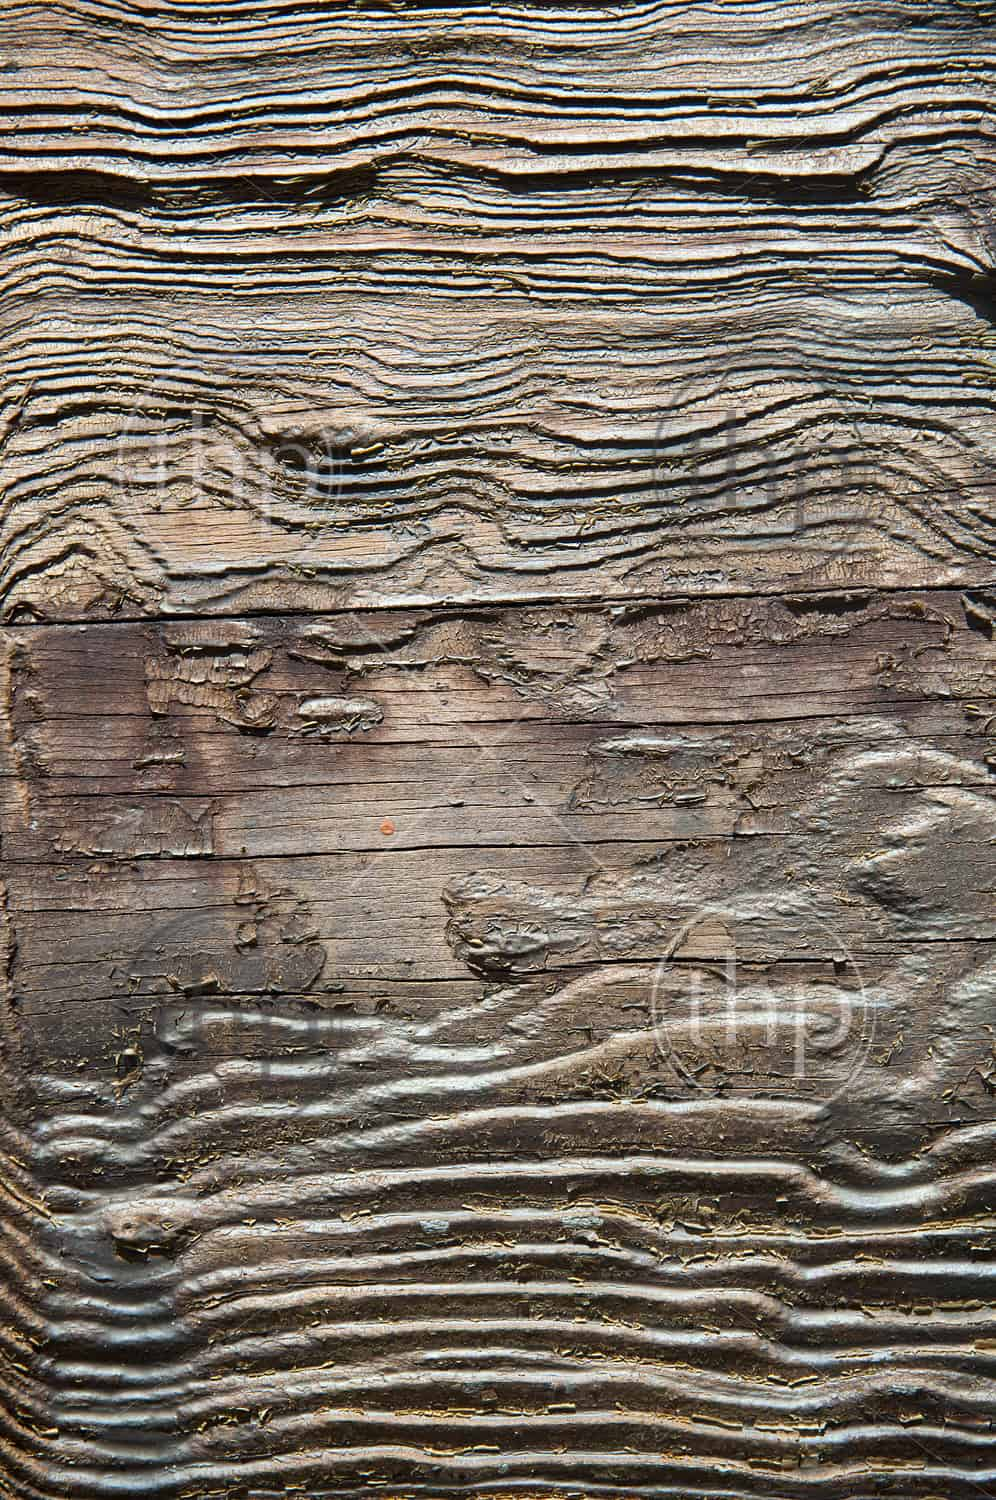 texture of rough weathered wood creates ornate photo. Black Bedroom Furniture Sets. Home Design Ideas